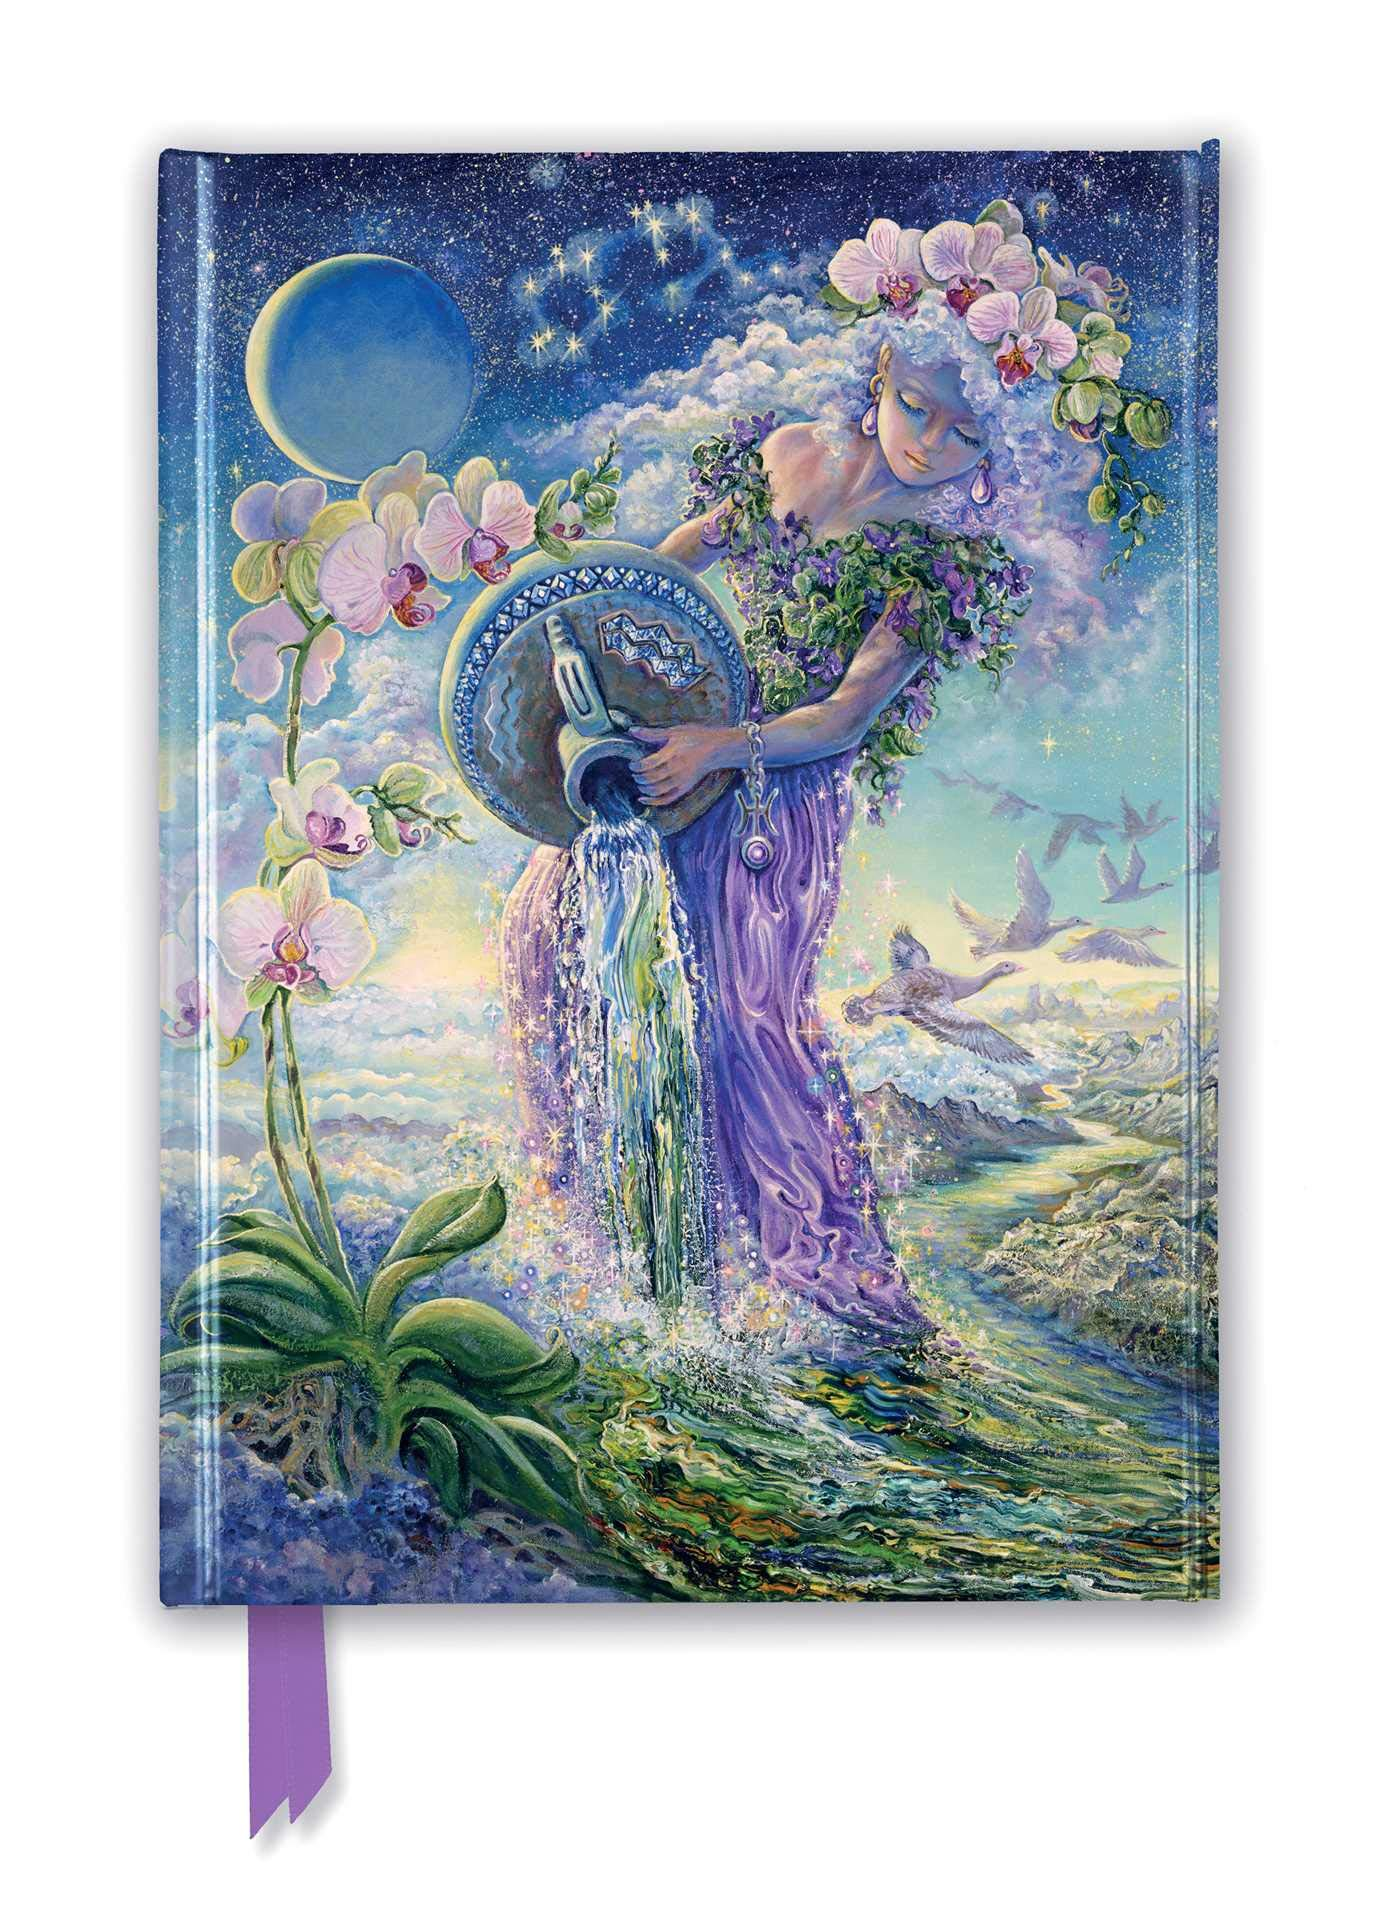 Download JOSEPHINE WALL AQUARIUS (FOILE (Flame Tree Notebooks)